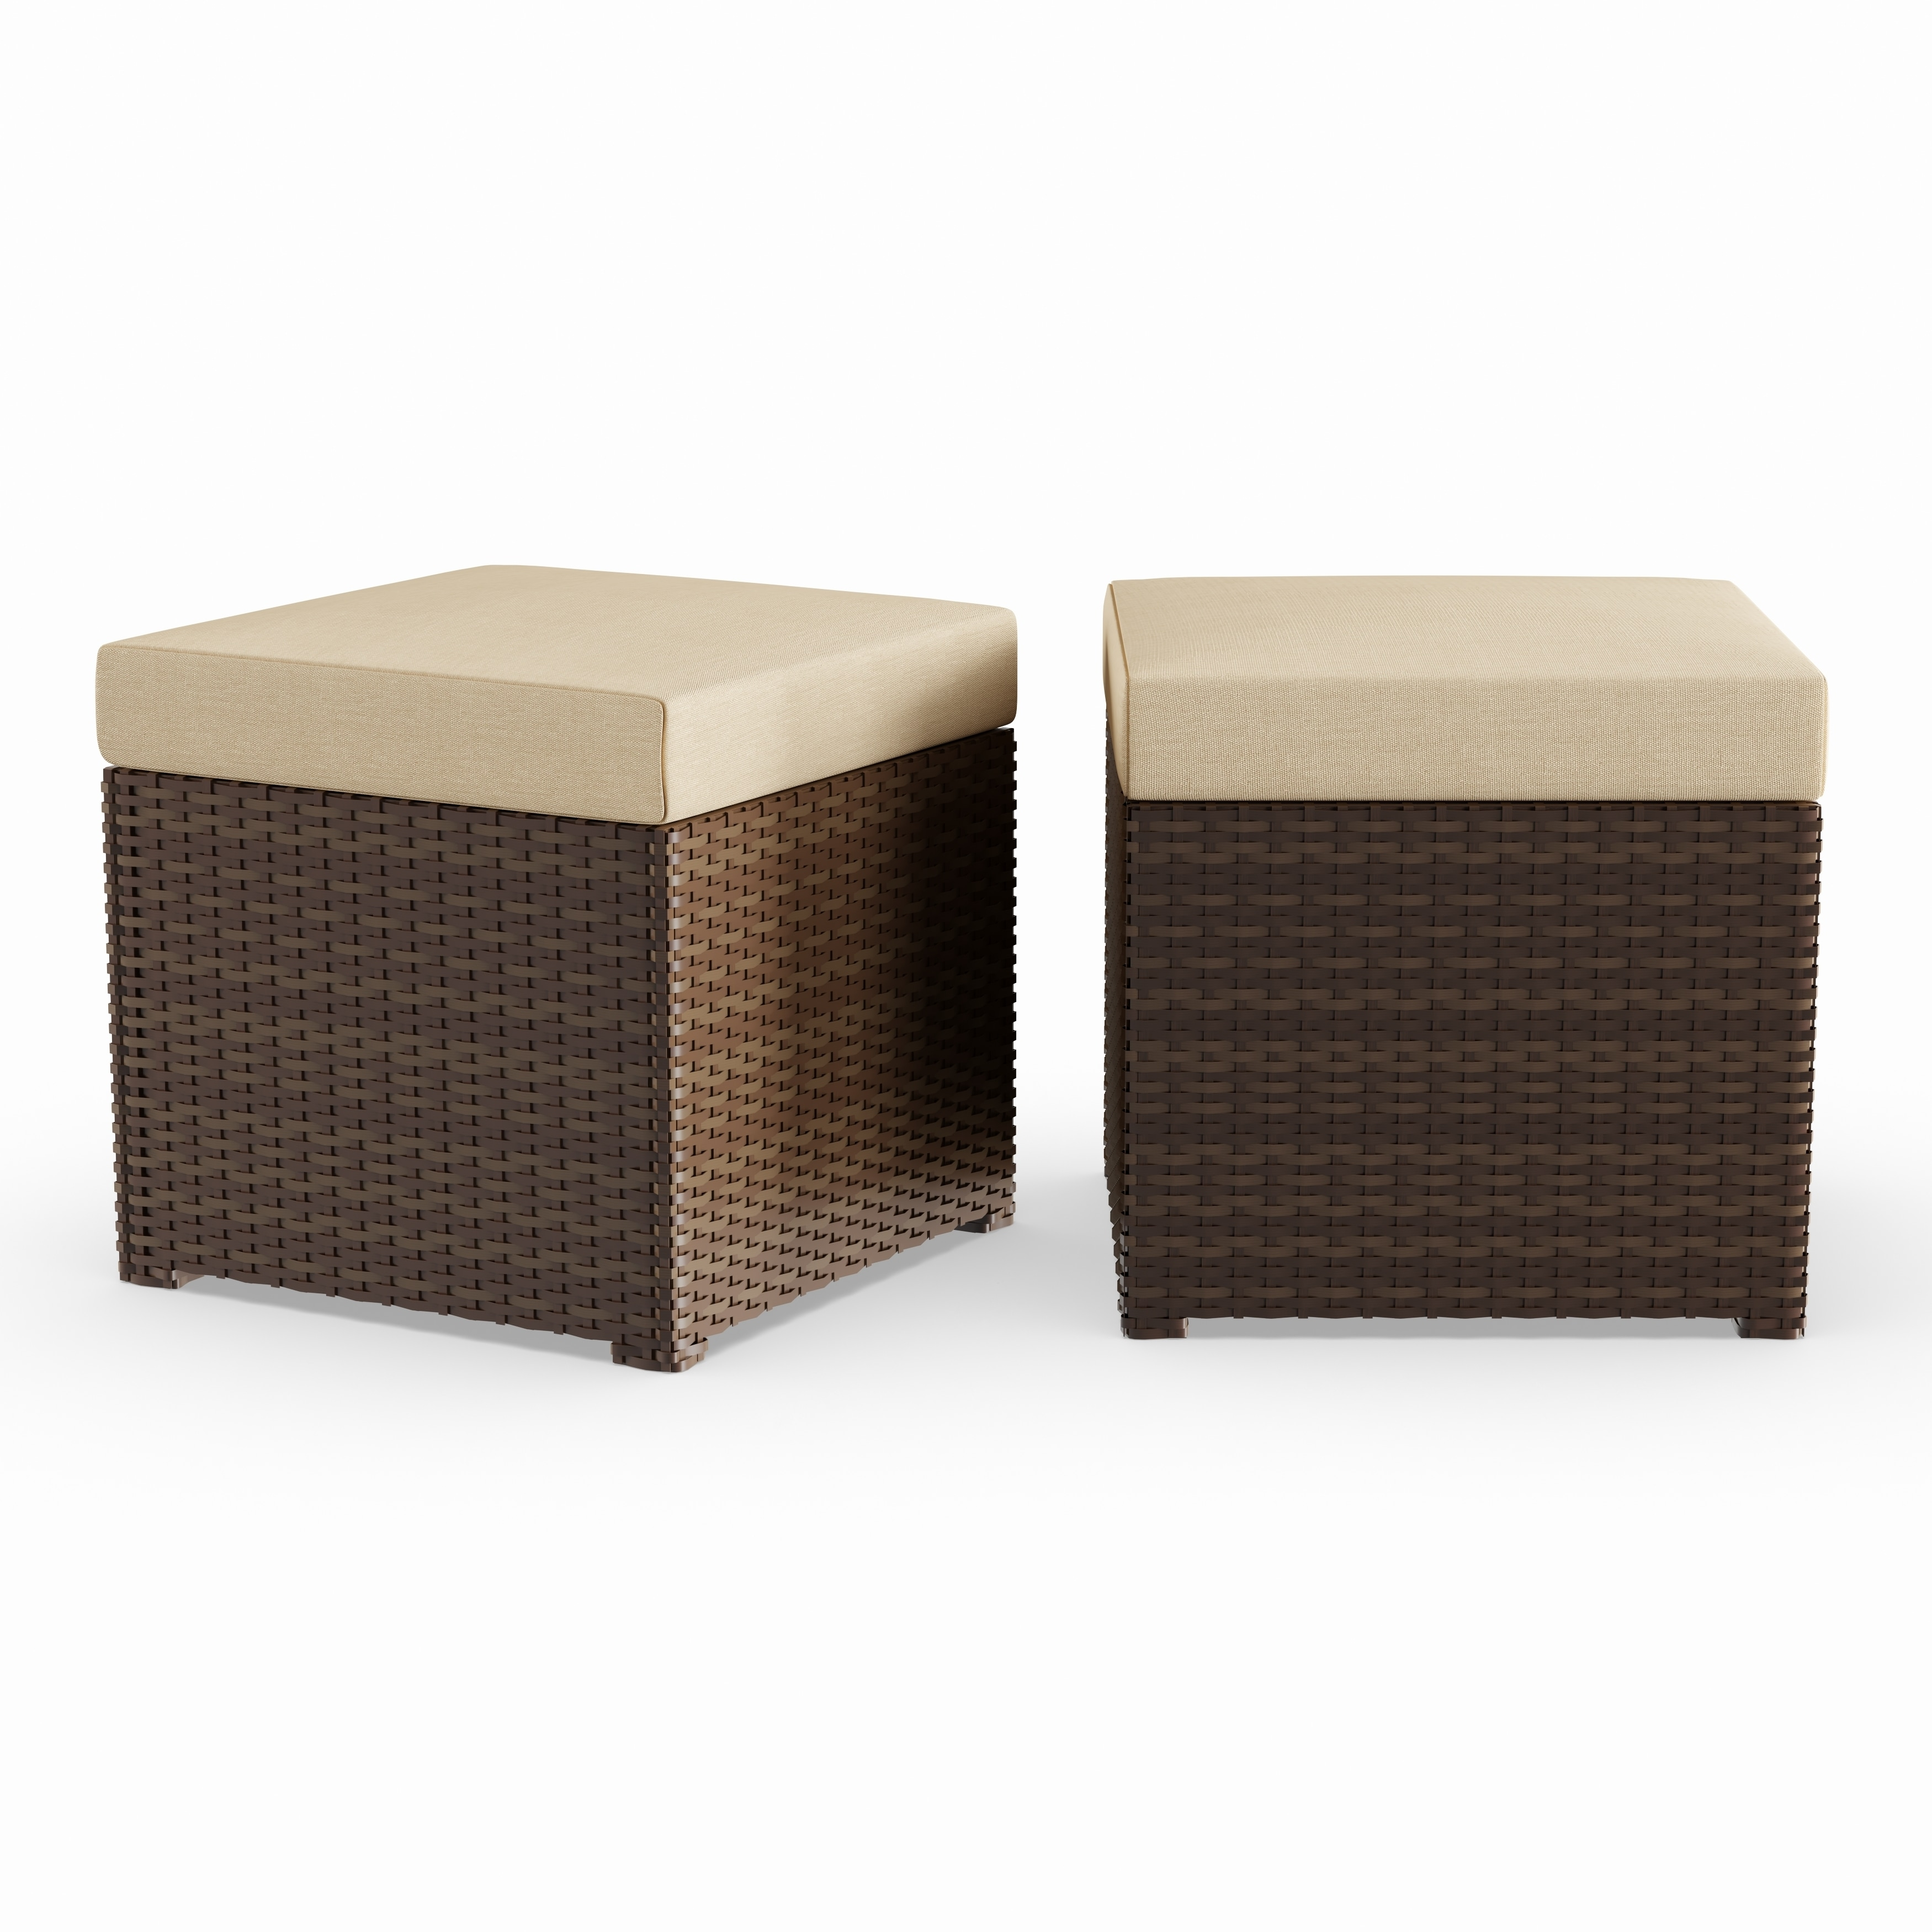 Shop havenside home stillwater 2 piece indoor outdoor dark brown woven resin rattan ottoman set with tan cushions on sale free shipping today